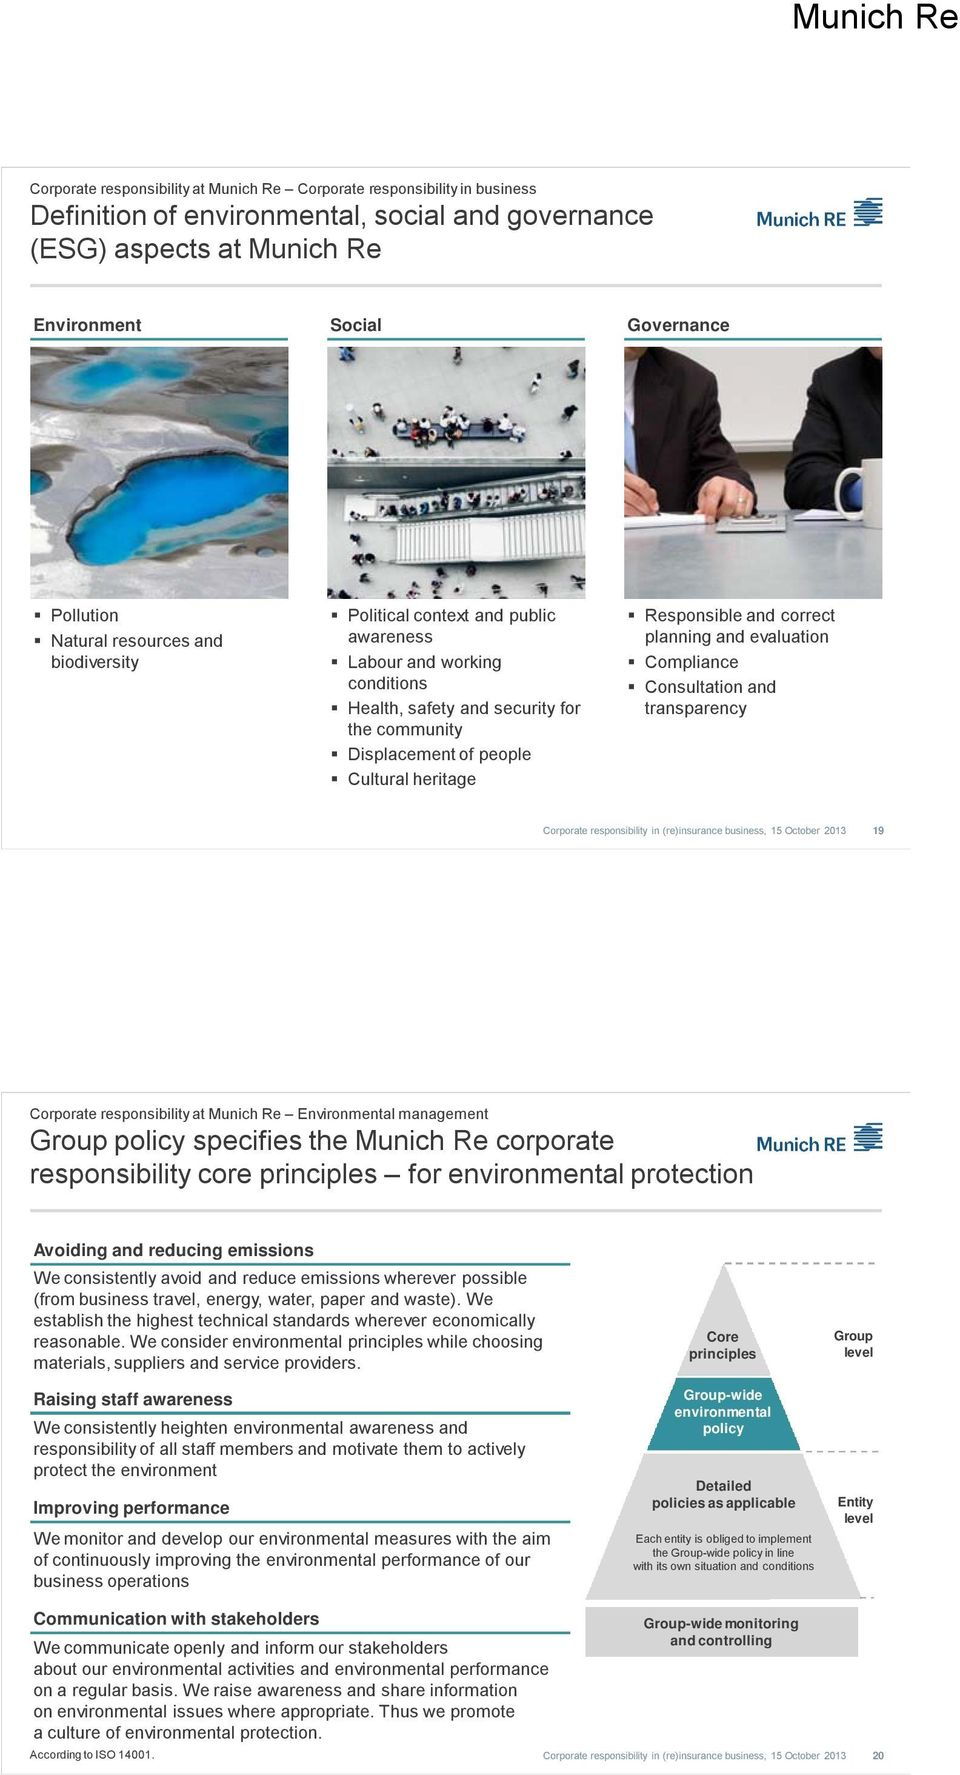 Responsible and correct planning and evaluation Compliance Consultation and transparency 19 Corporate responsibility at Munich Re Environmental management Group policy specifies the Munich Re